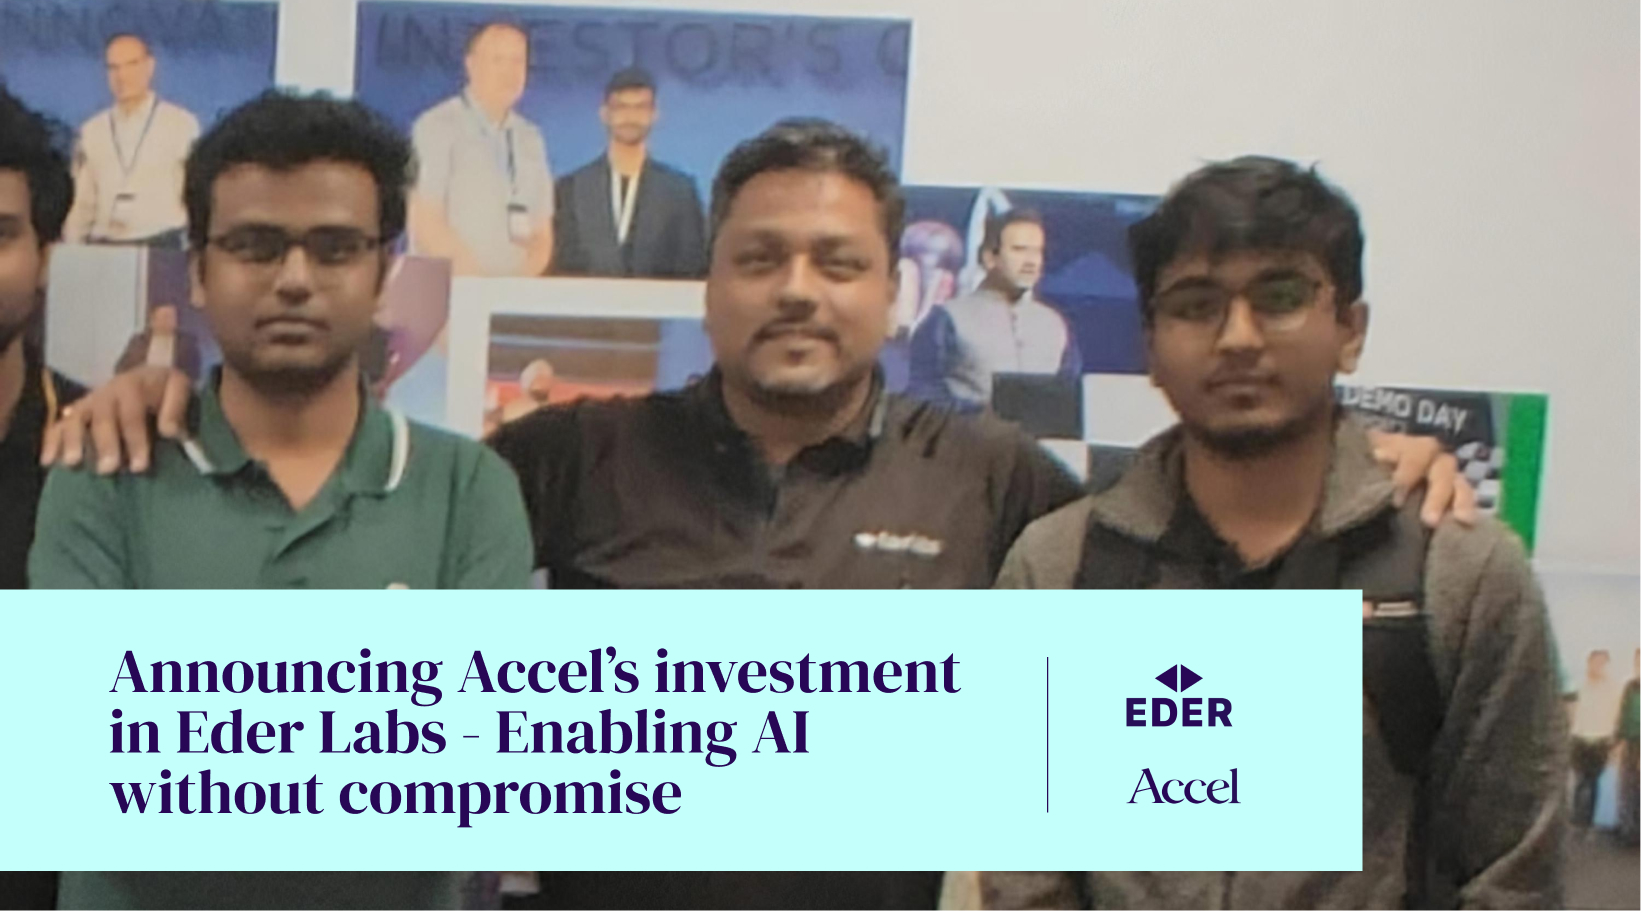 Announcing Accel's investment in Eder Labs - Enabling AI without Compromise